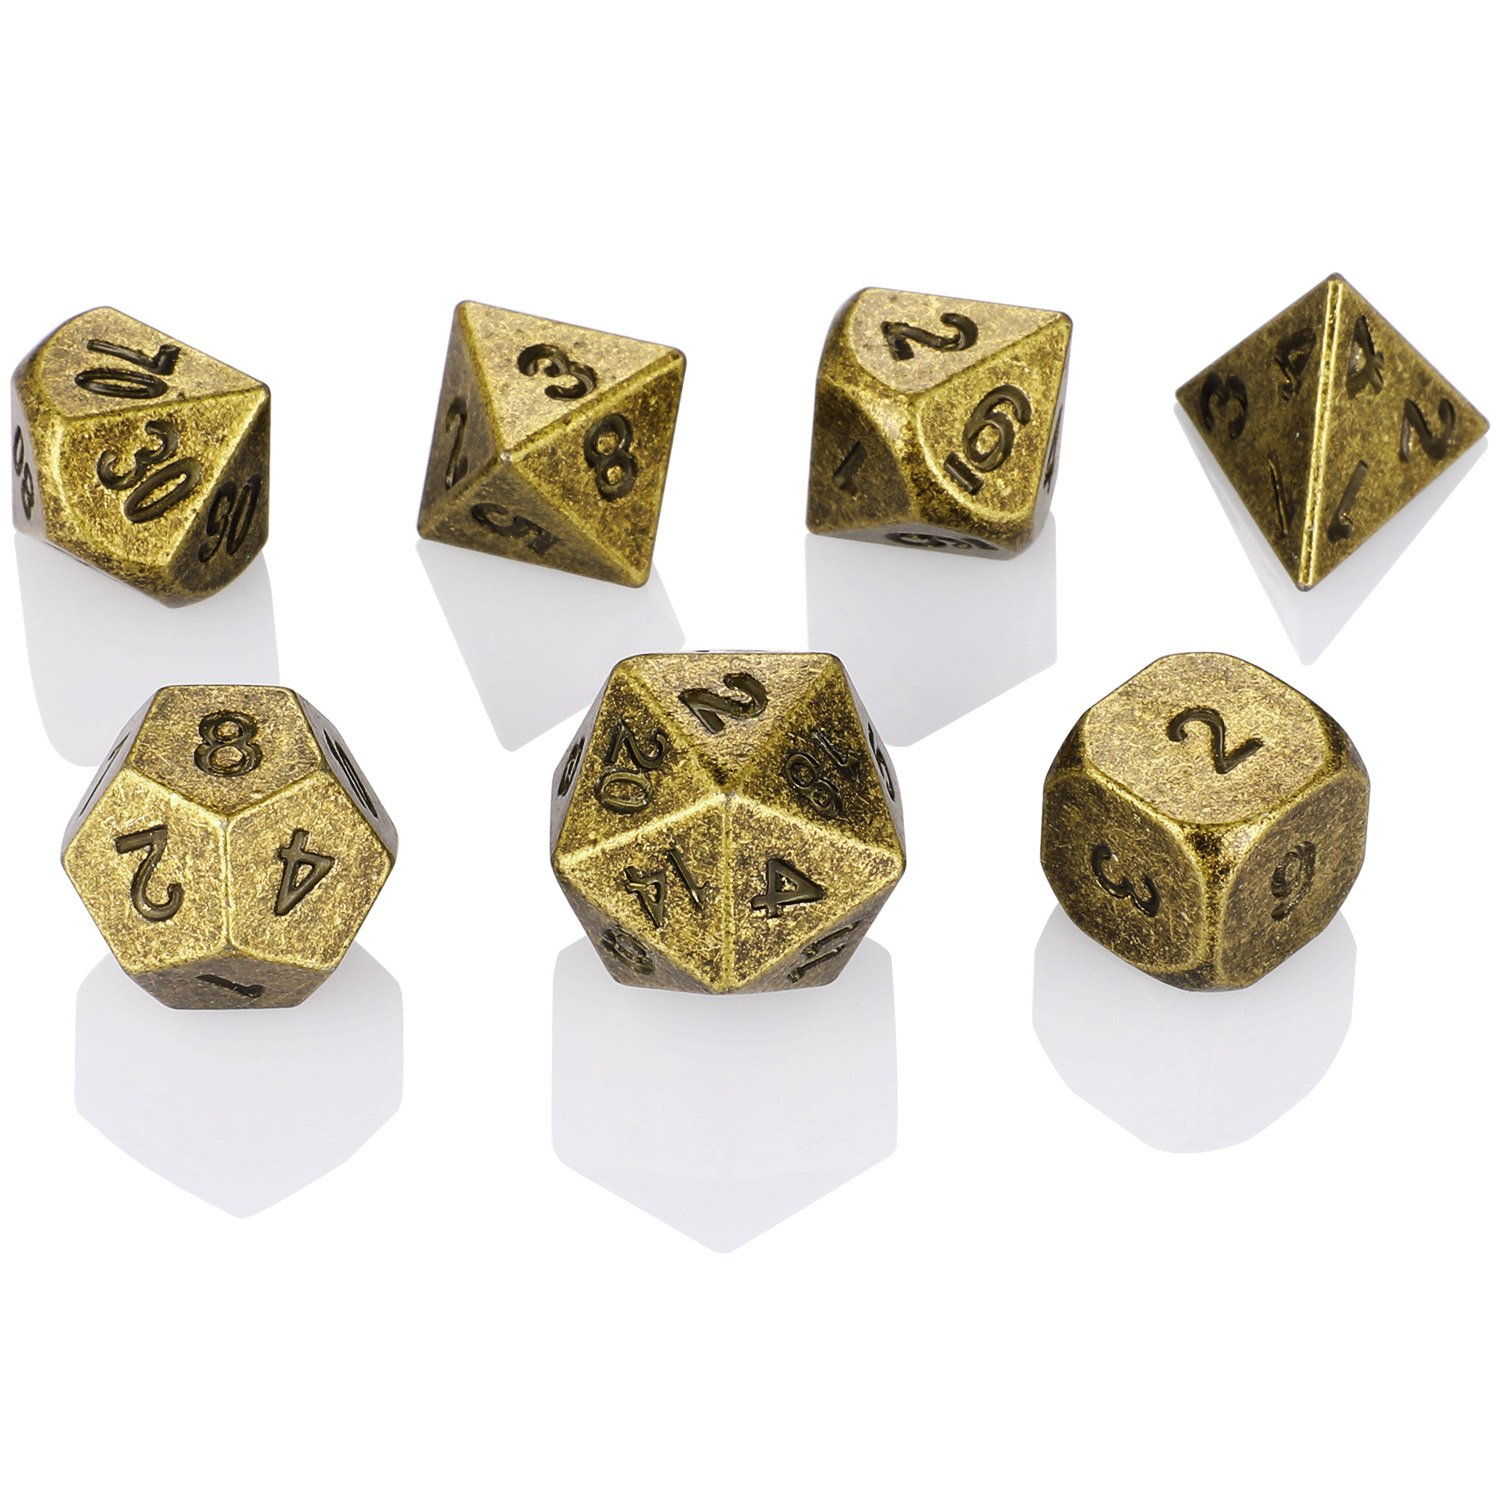 Arcobaleno-Rosa Hestya 7 Pieces Metal Dices Set with Storage Bag And Enamel for Dungeons And Dragons